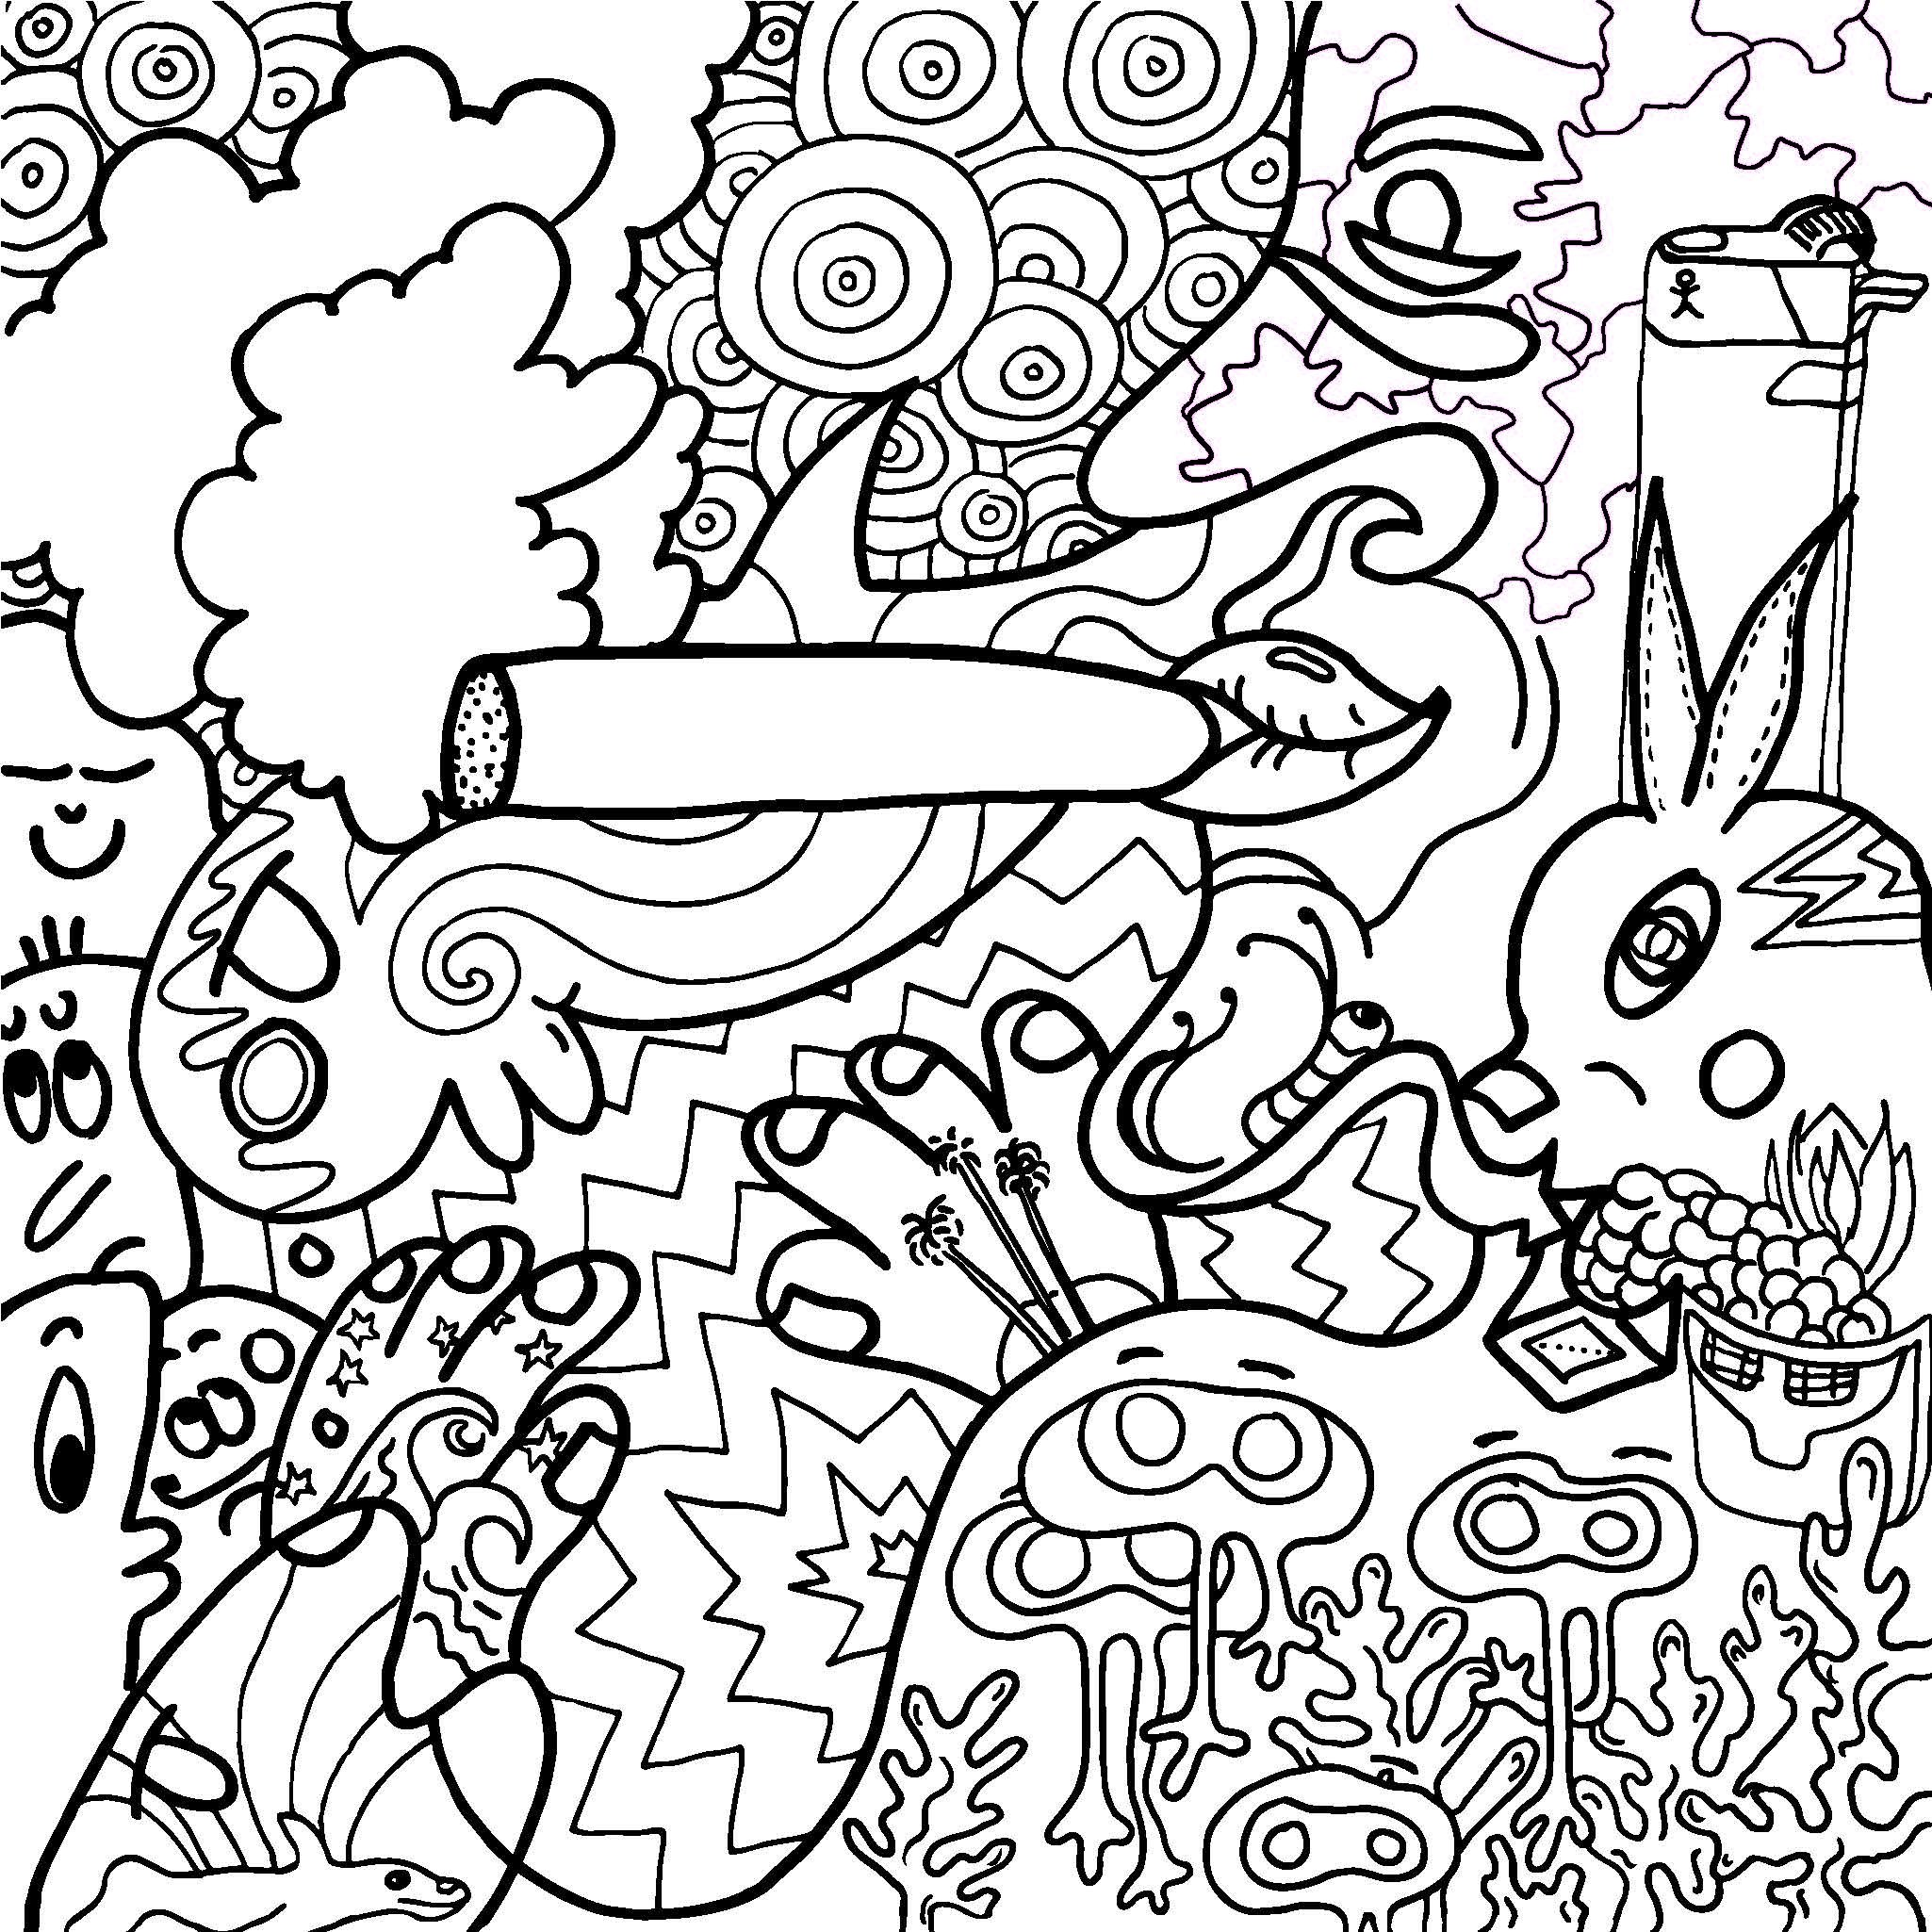 Amazon.com: The Stoner\'s Coloring Book: Coloring for High-Minded ...